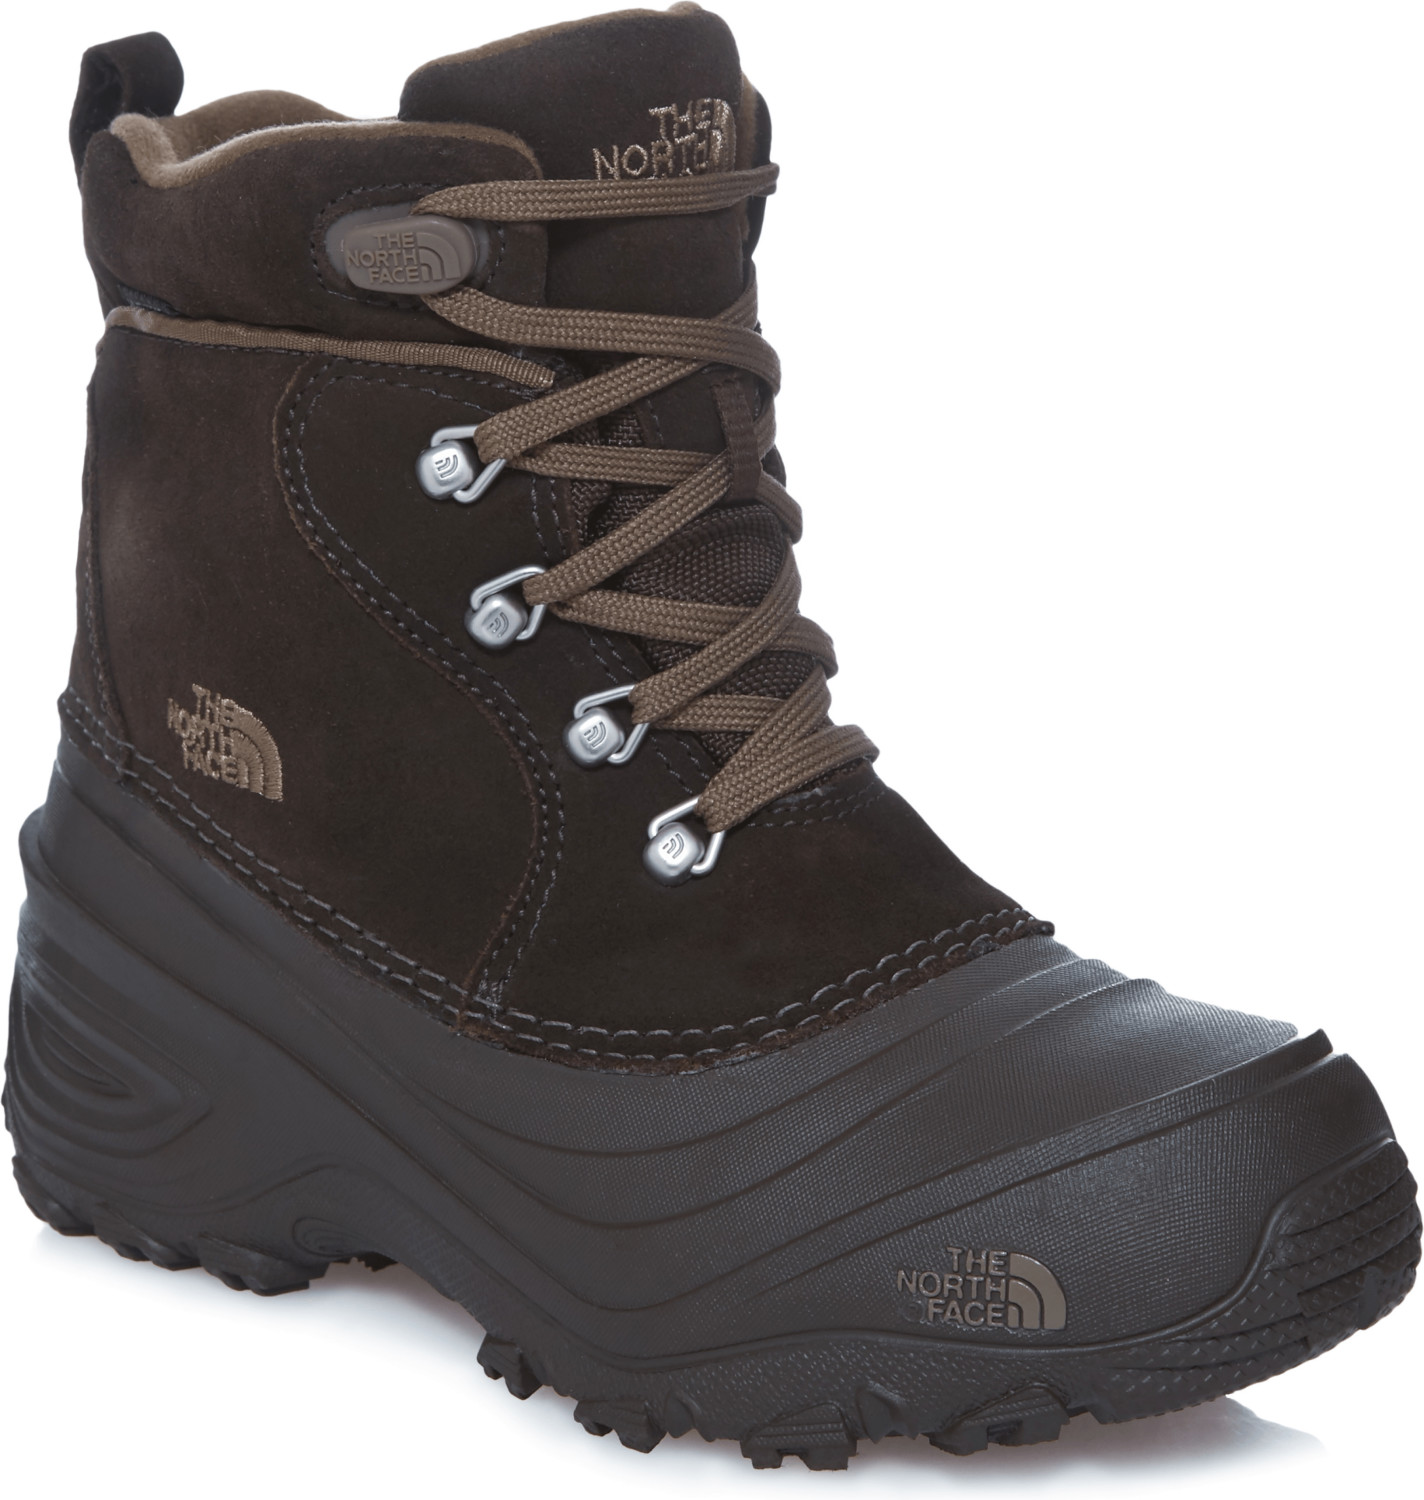 The North Face Chilkat Lace II Youth